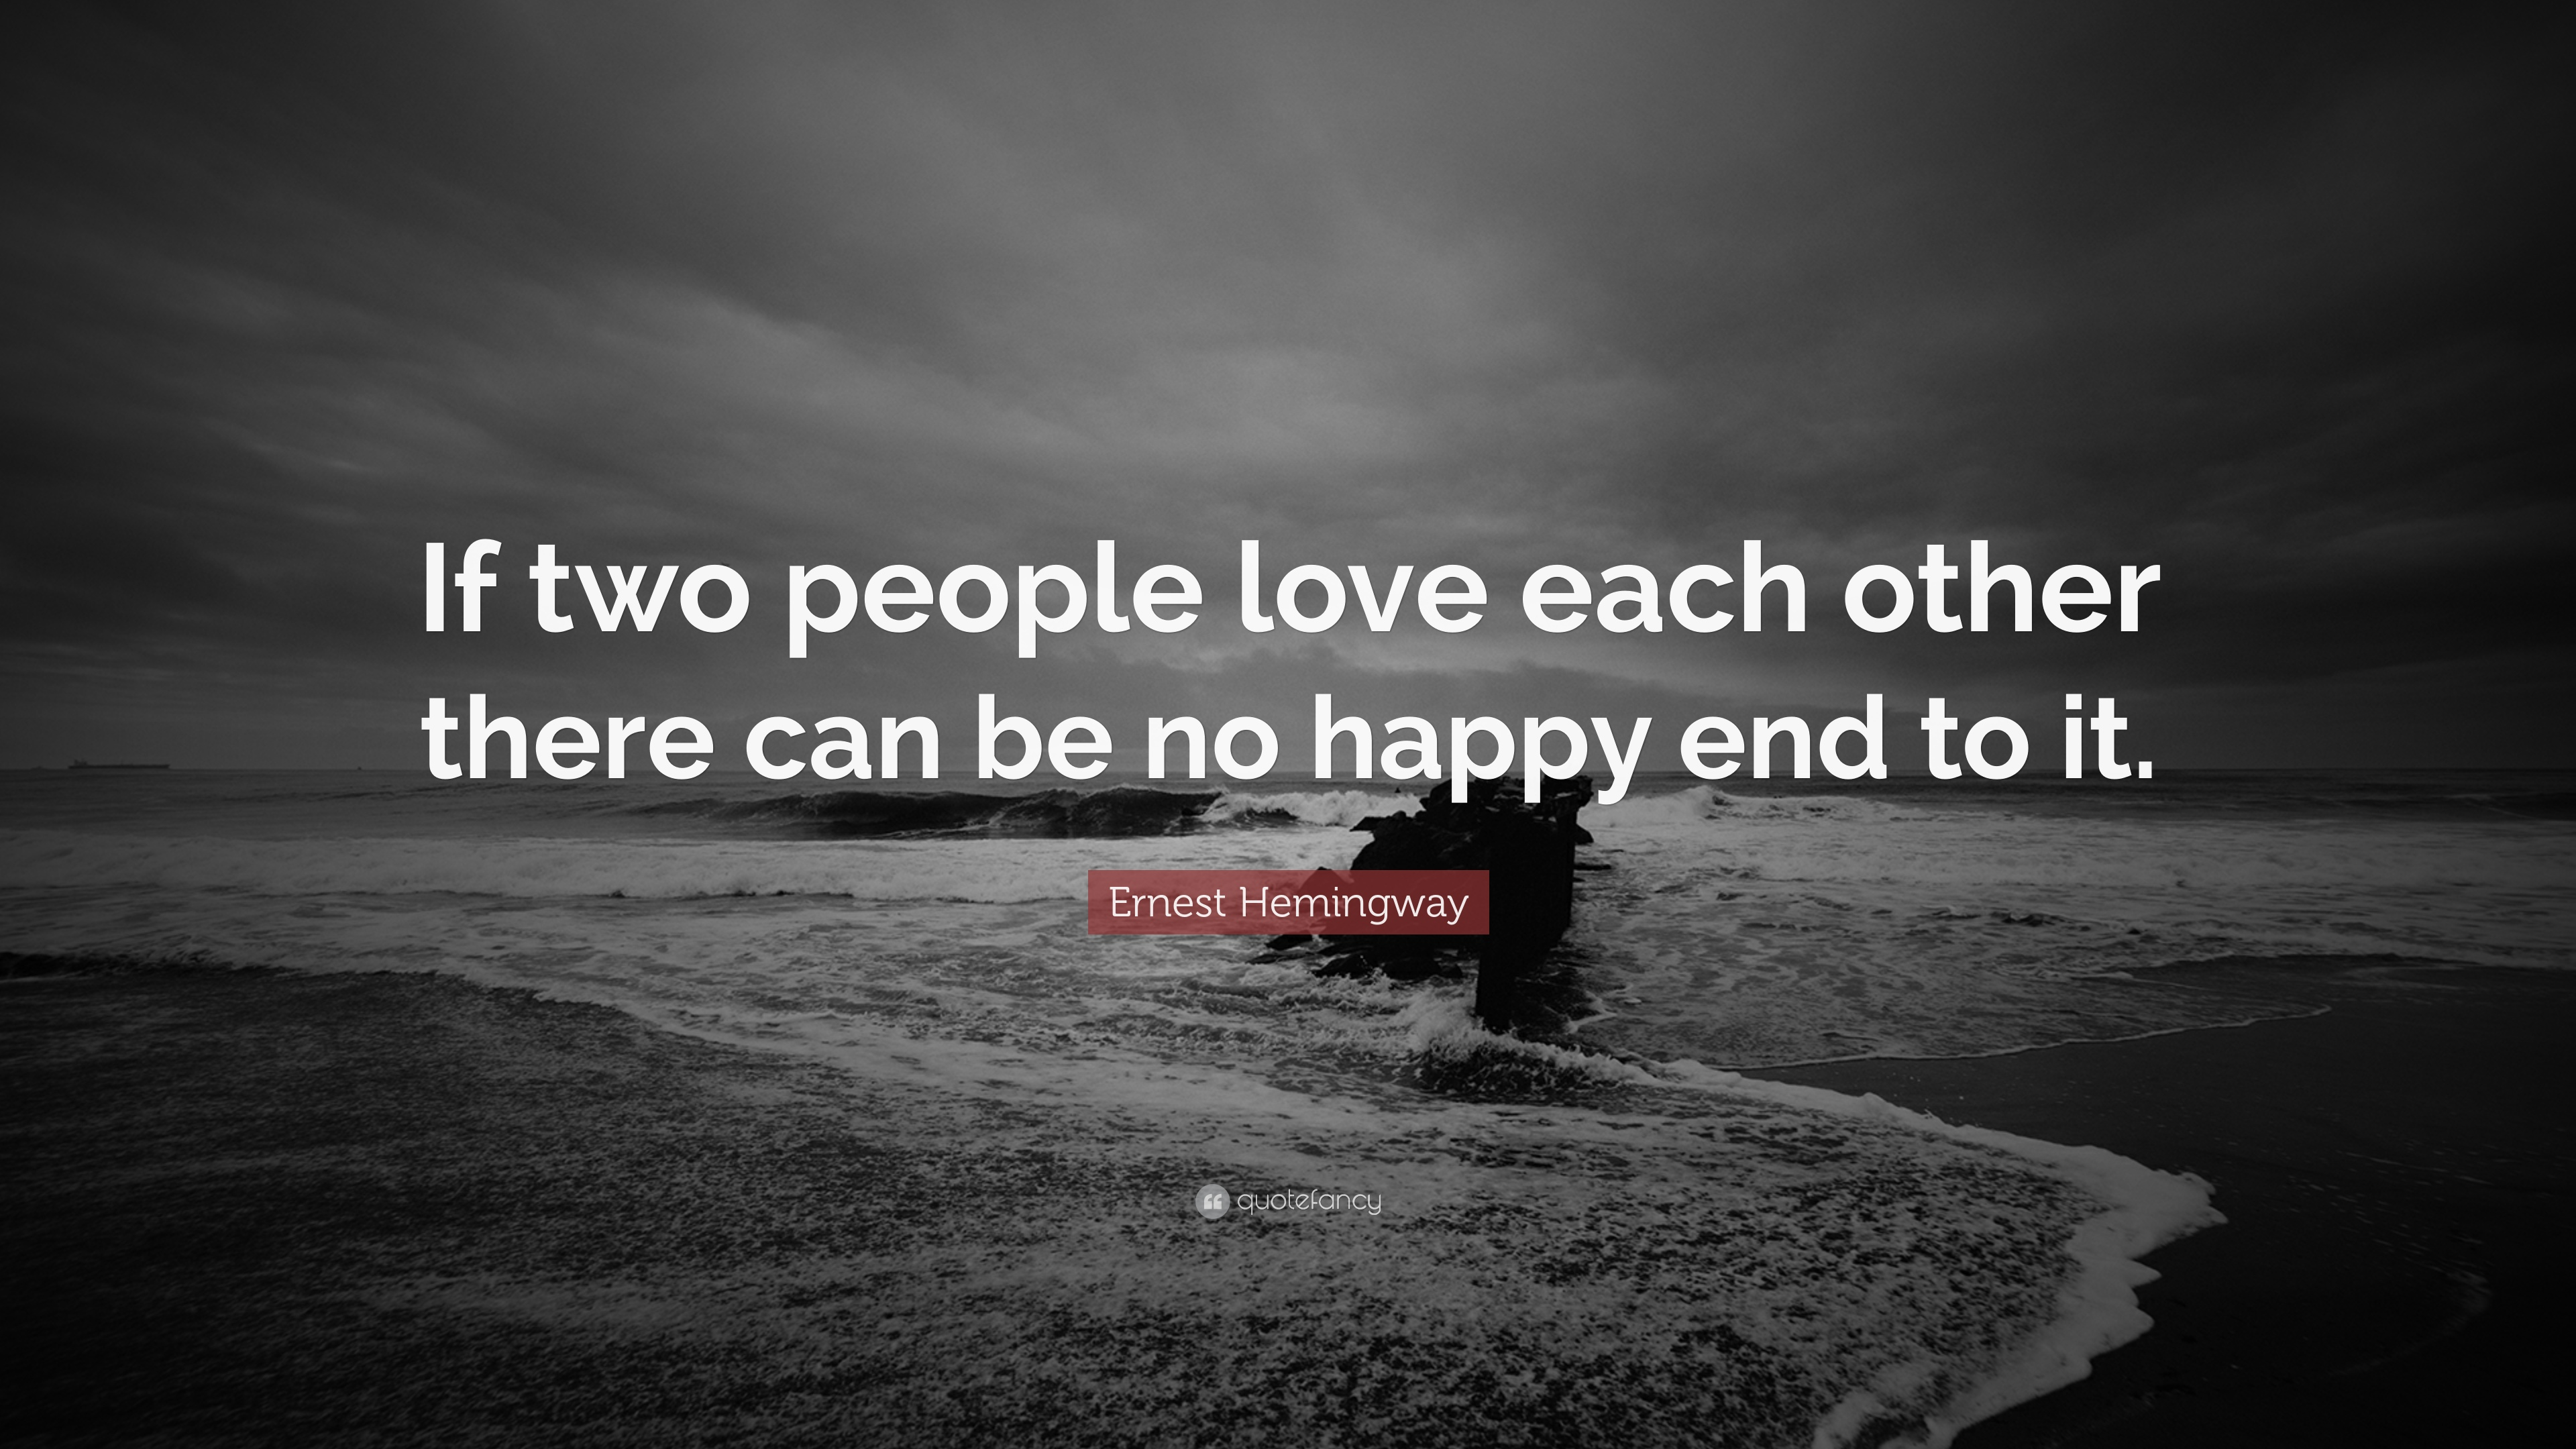 Ernest Hemingway Quote If Two People Love Each Other There Can Be